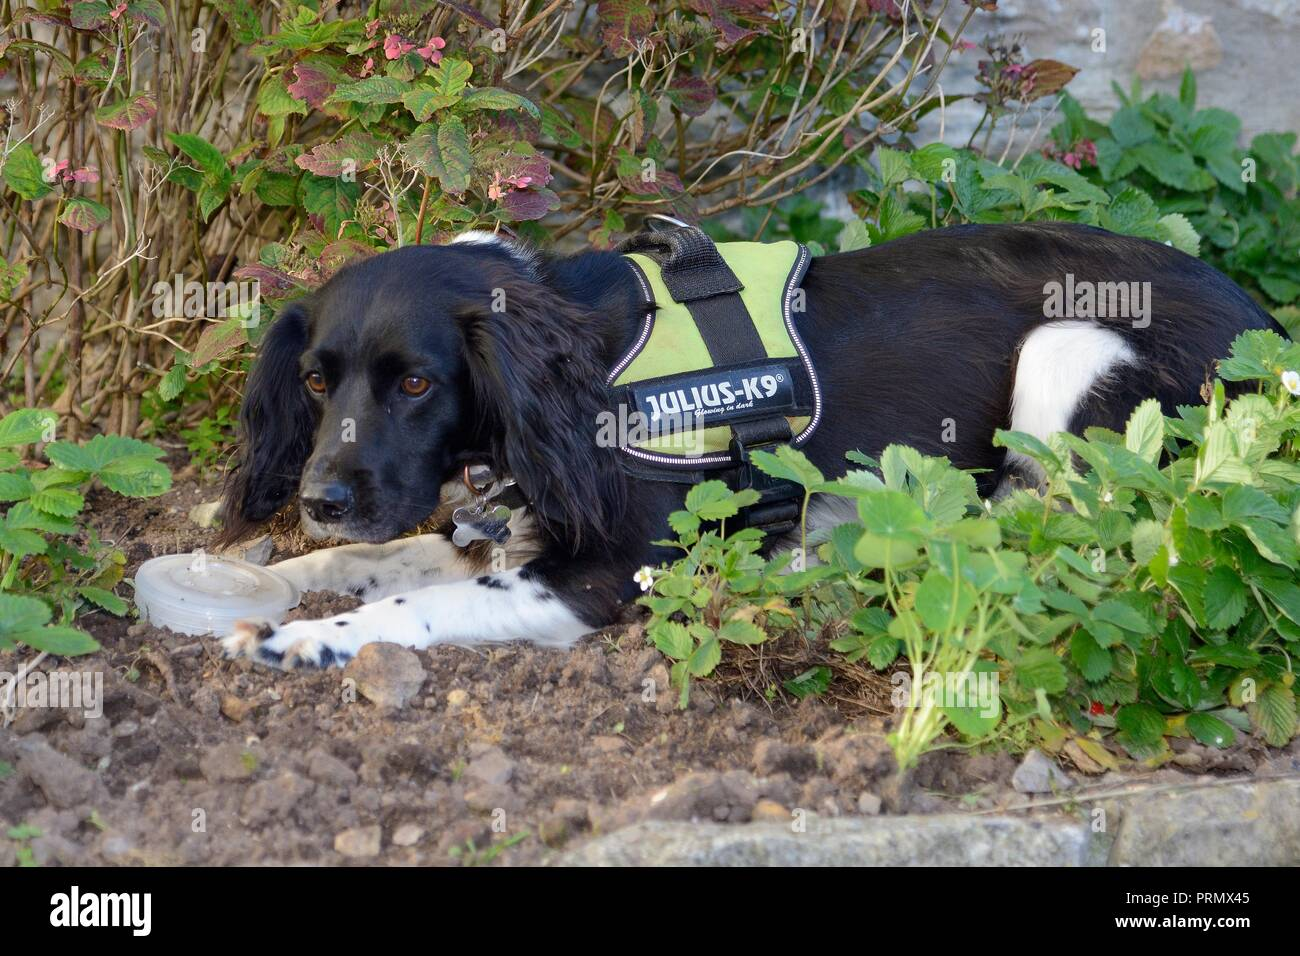 Sniffer dog Freya sitting by a plastic pot containing a Great crested newt (Triturus cristatus) she found during a training exercise for Wessex Water. - Stock Image